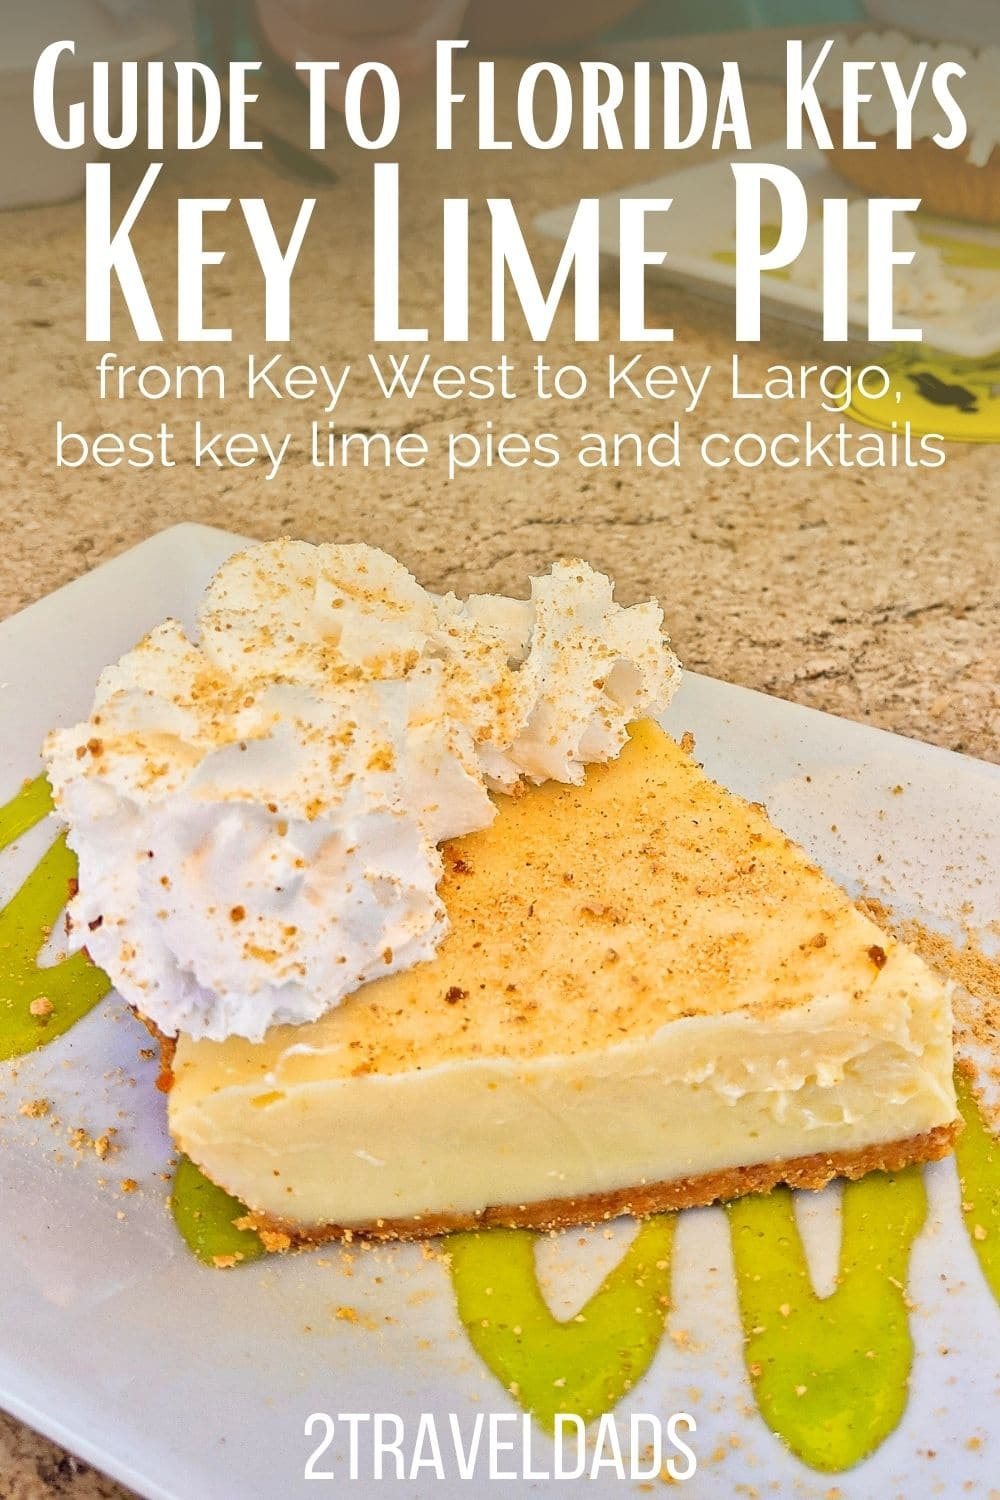 The best key lime pie in Key West and the Florida Keys is worth finding. From pie slices to key lime cocktails, key lime pie on a stick to the history of key lime pie, this is the guide to answer all your questions.